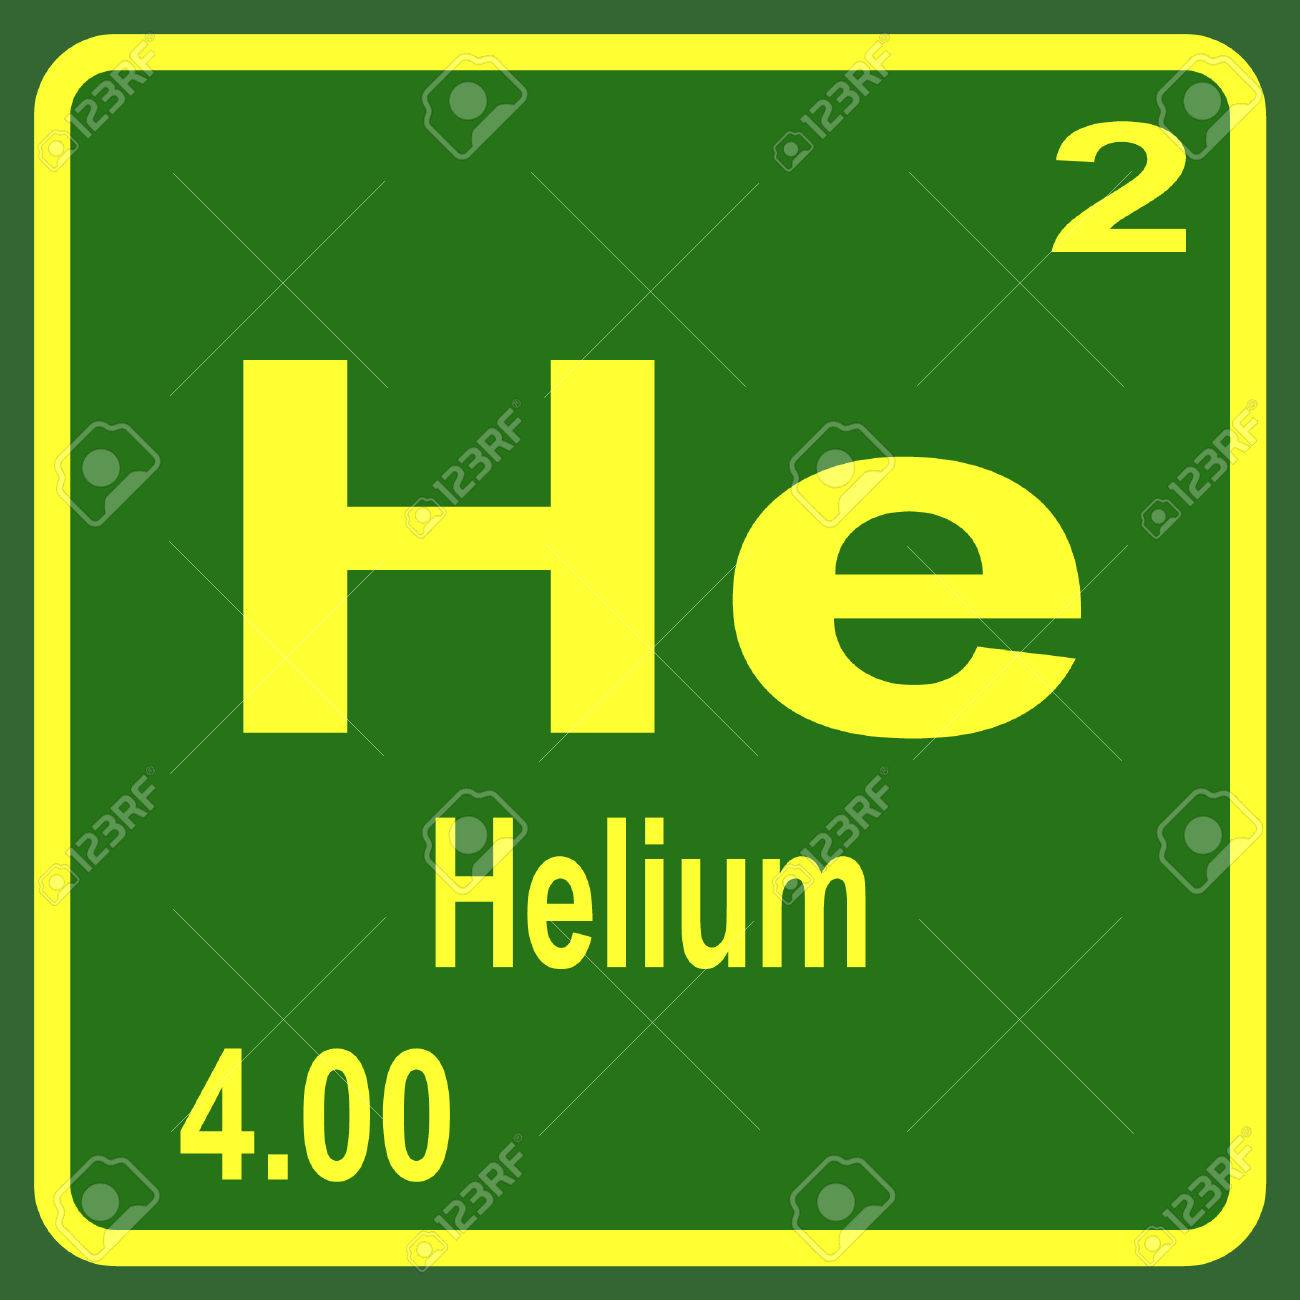 Periodic table of elements helium royalty free cliparts vectors periodic table of elements helium stock vector 53900229 urtaz Image collections